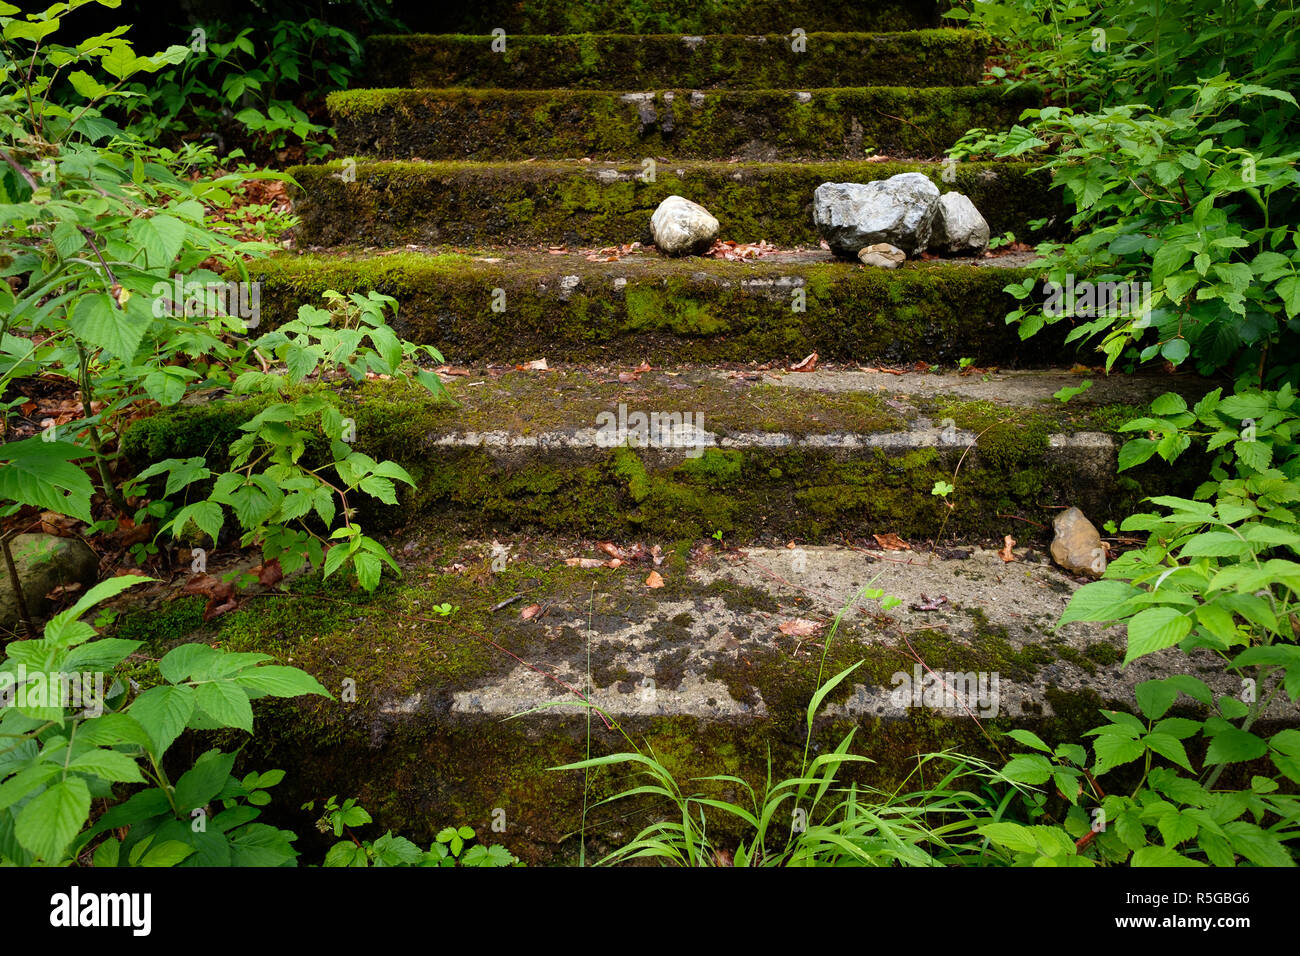 stairs overgrown with moss and overgrown with stones and plants - Stock Image